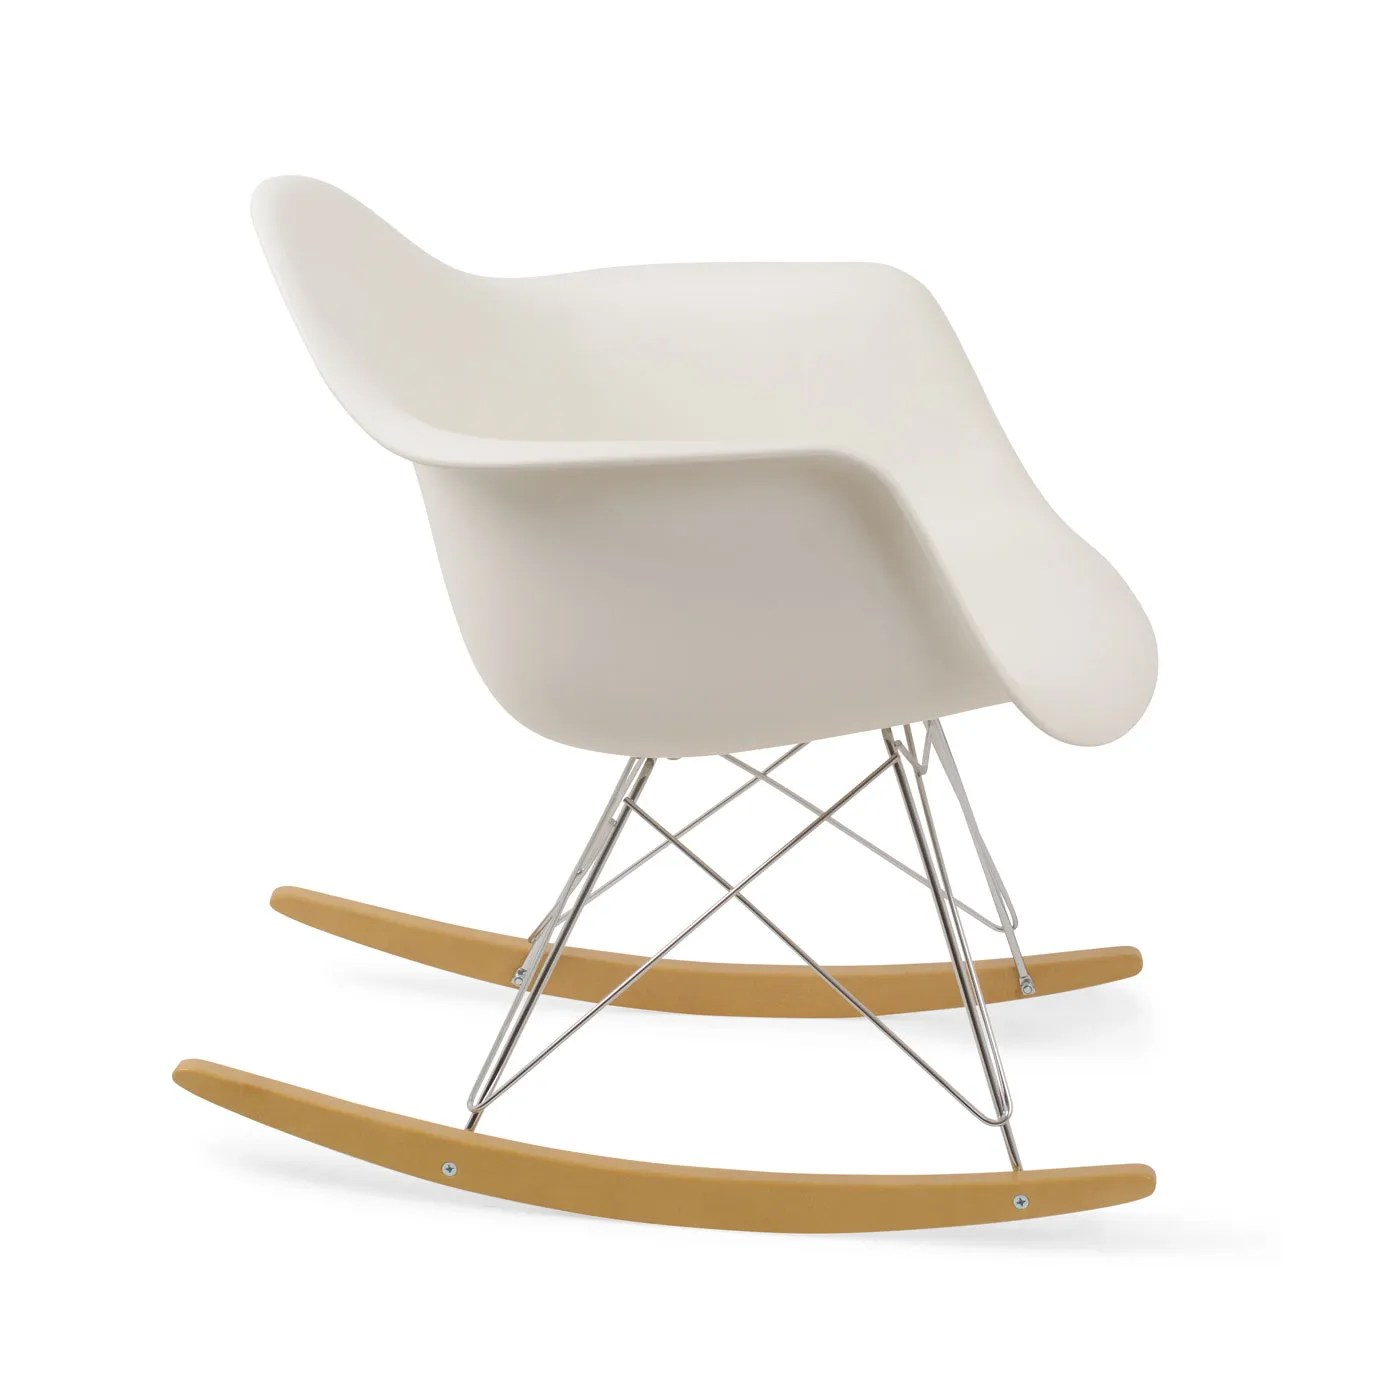 antique rocking chair price guide chairs without arms vitra eames rar | heal's